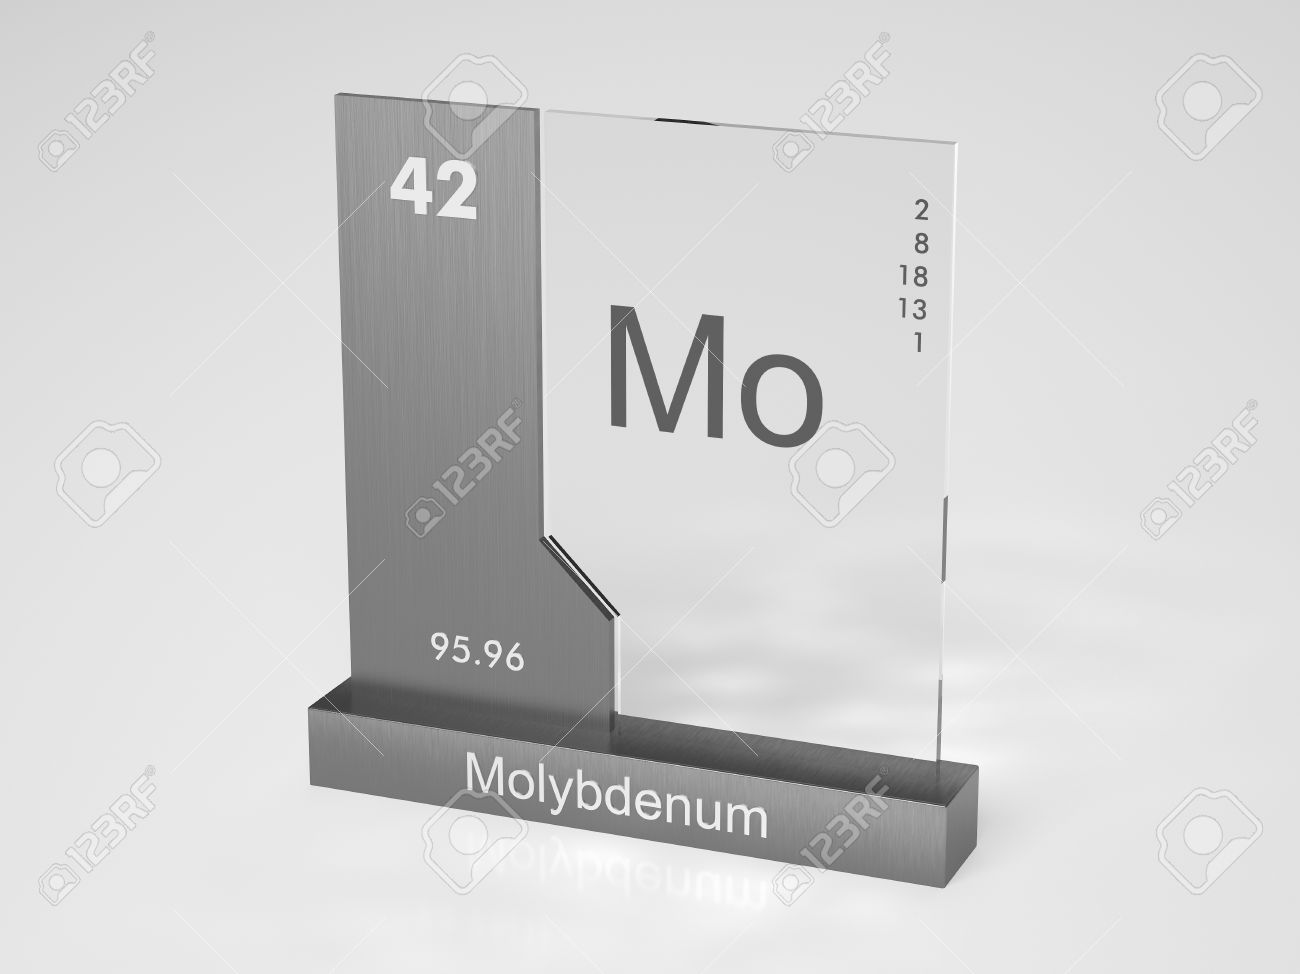 Molybdenum symbol mo chemical element of the periodic table molybdenum symbol mo chemical element of the periodic table stock photo 10470008 urtaz Gallery